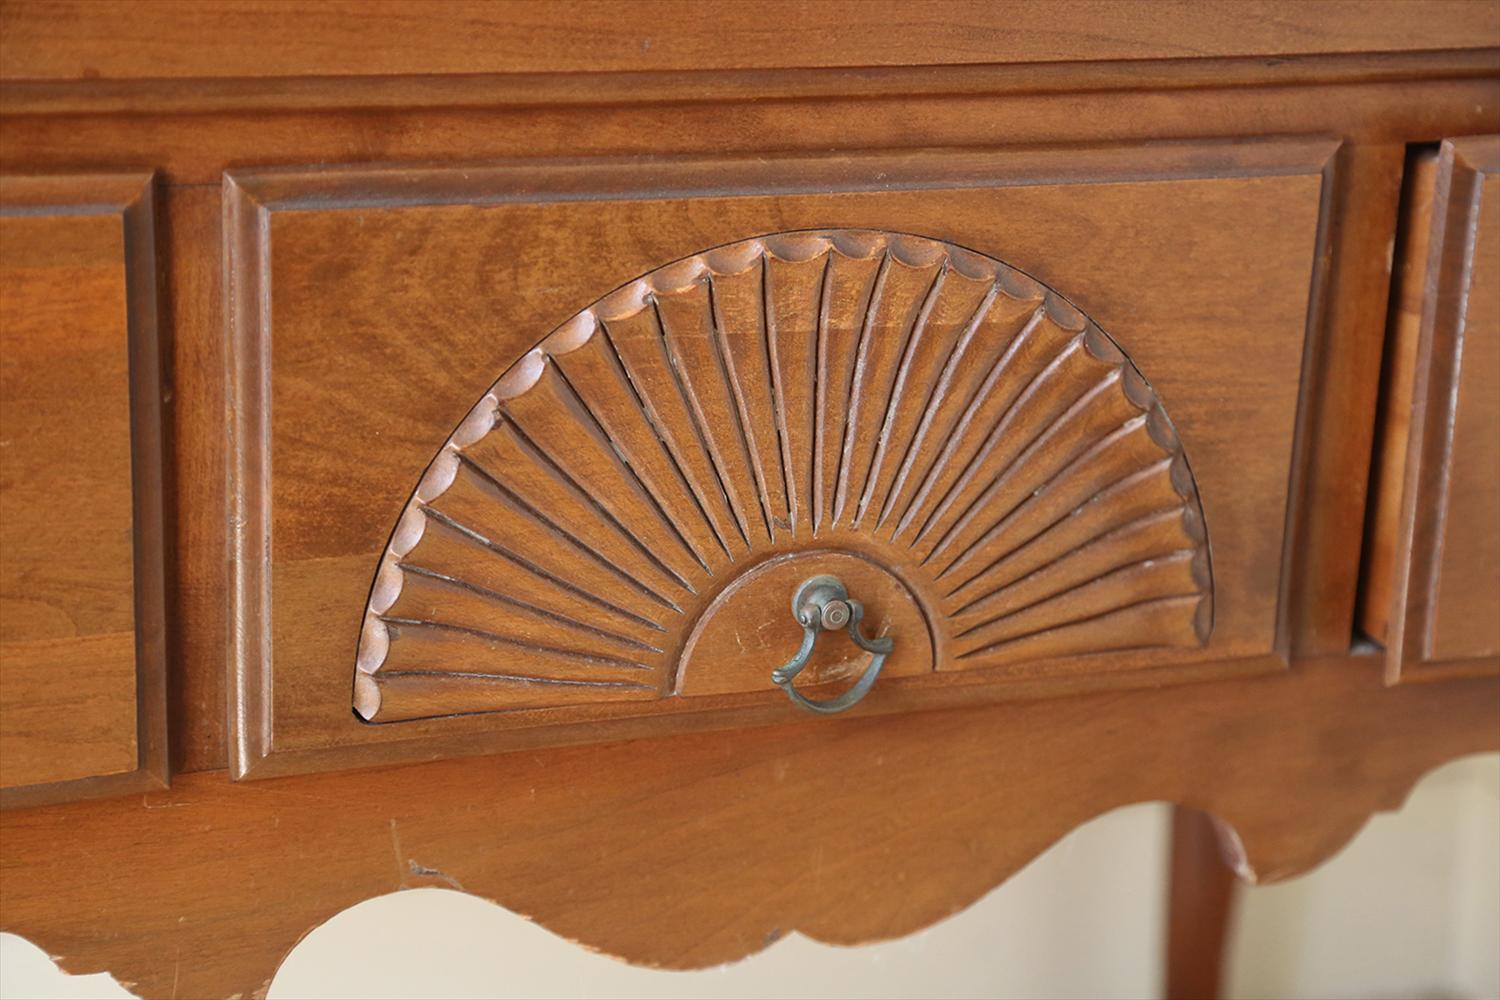 Igavel auctions chippendale style american hardwood chest for Sterling house